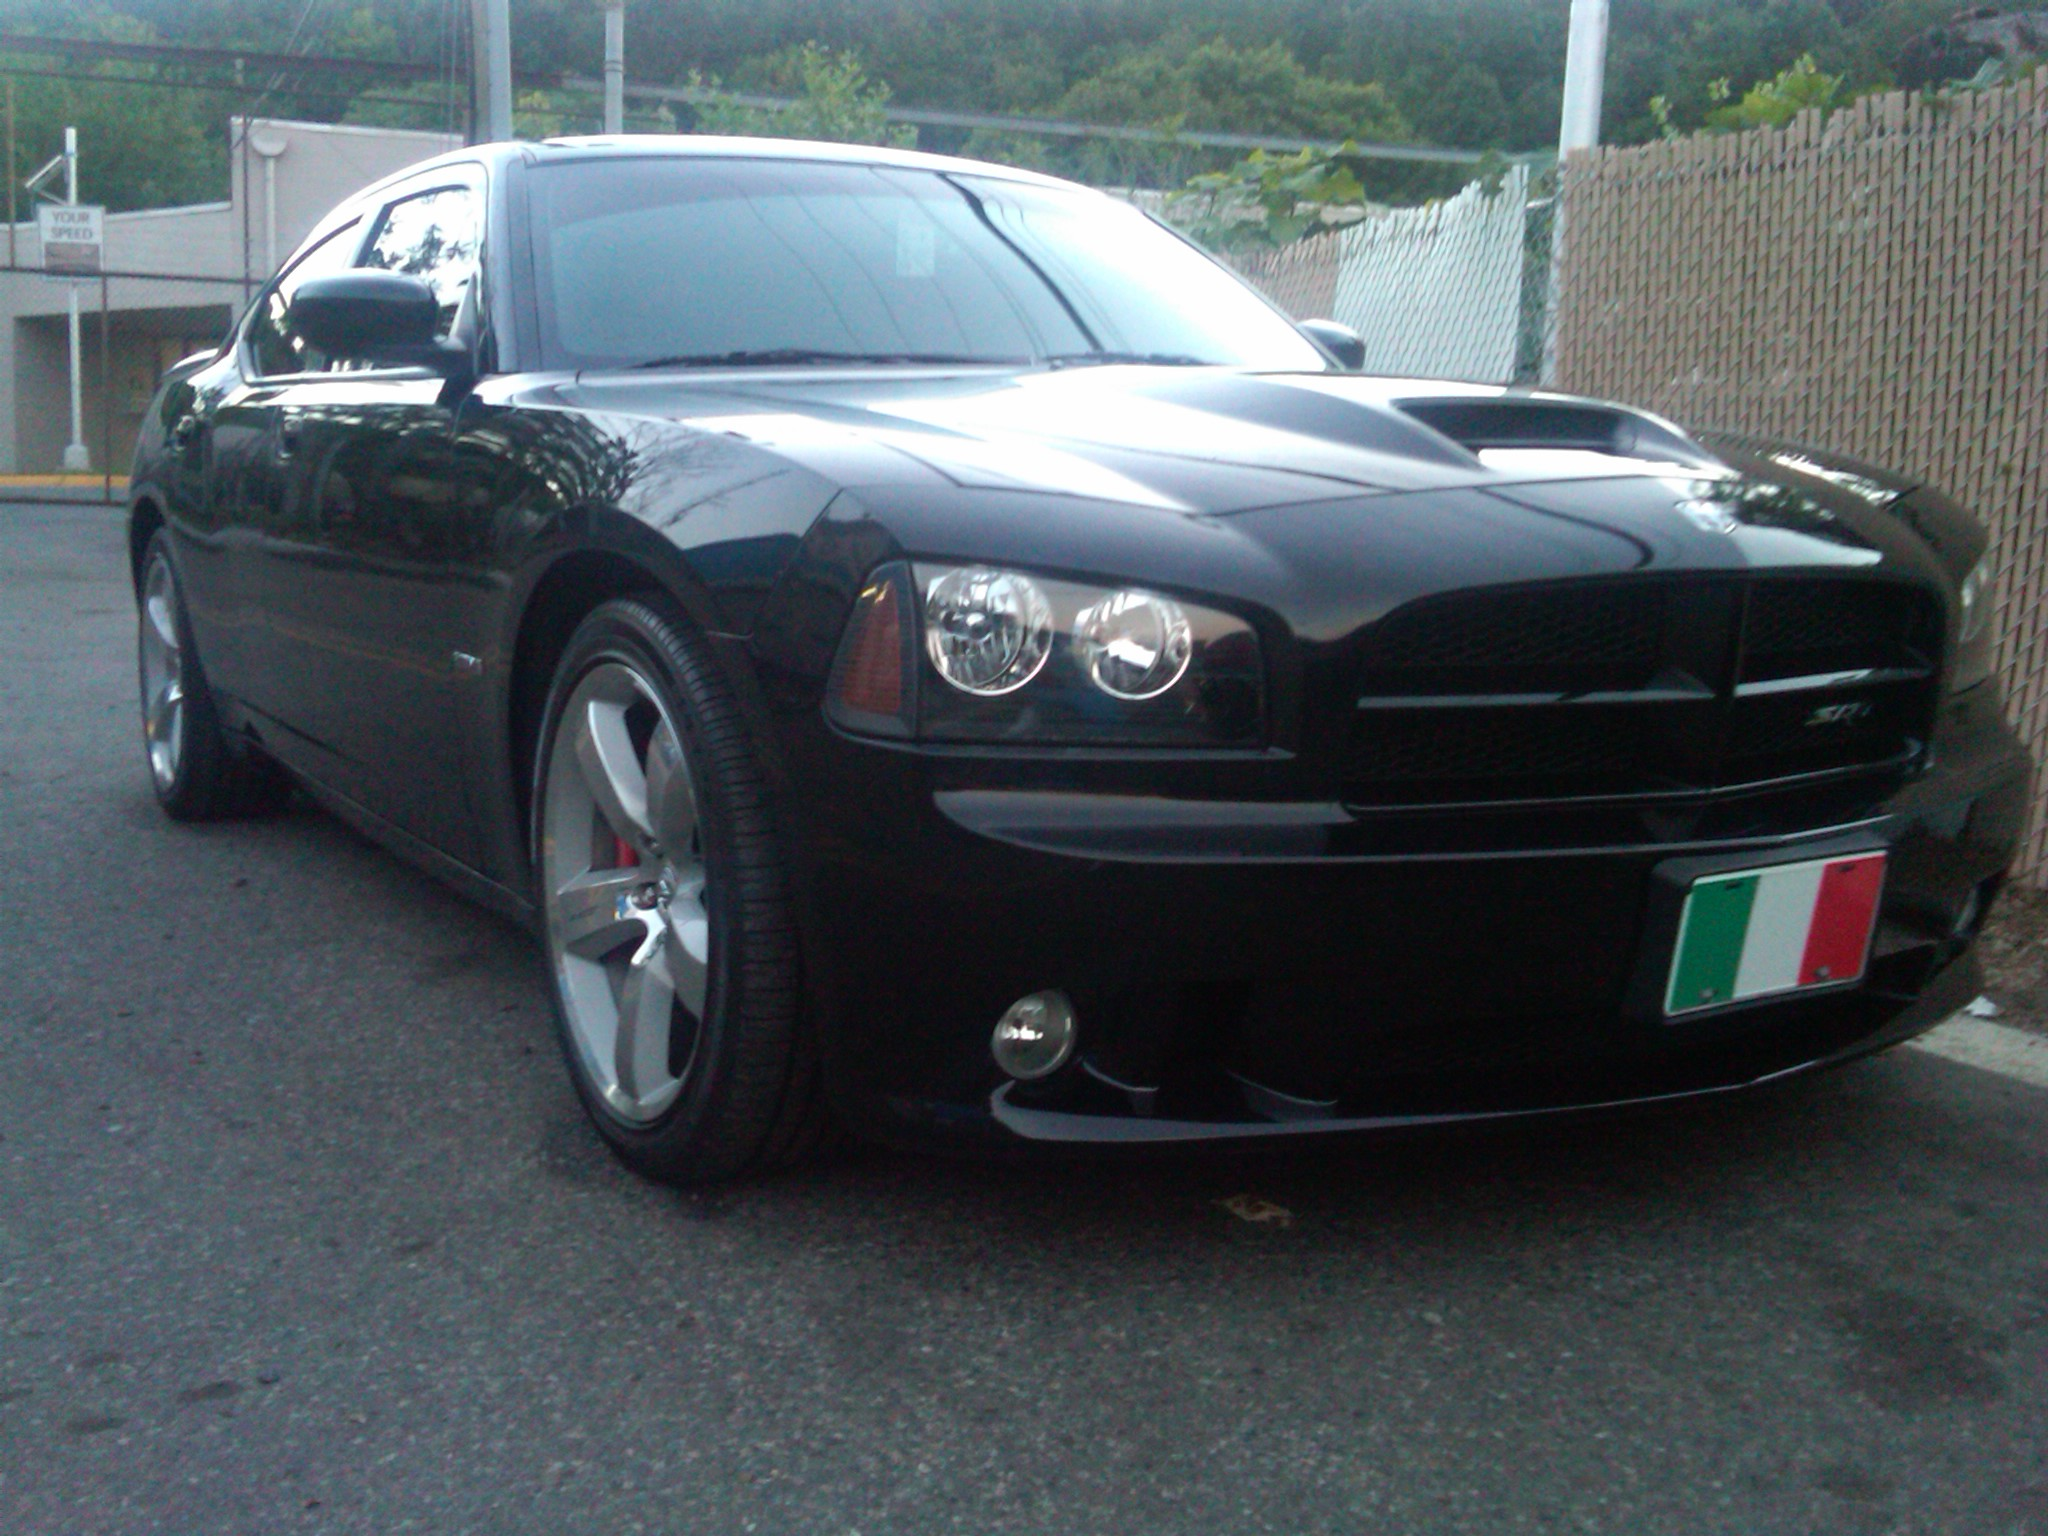 2008 dodge charger srt8 1 4 mile drag racing timeslip specs 0 60. Black Bedroom Furniture Sets. Home Design Ideas